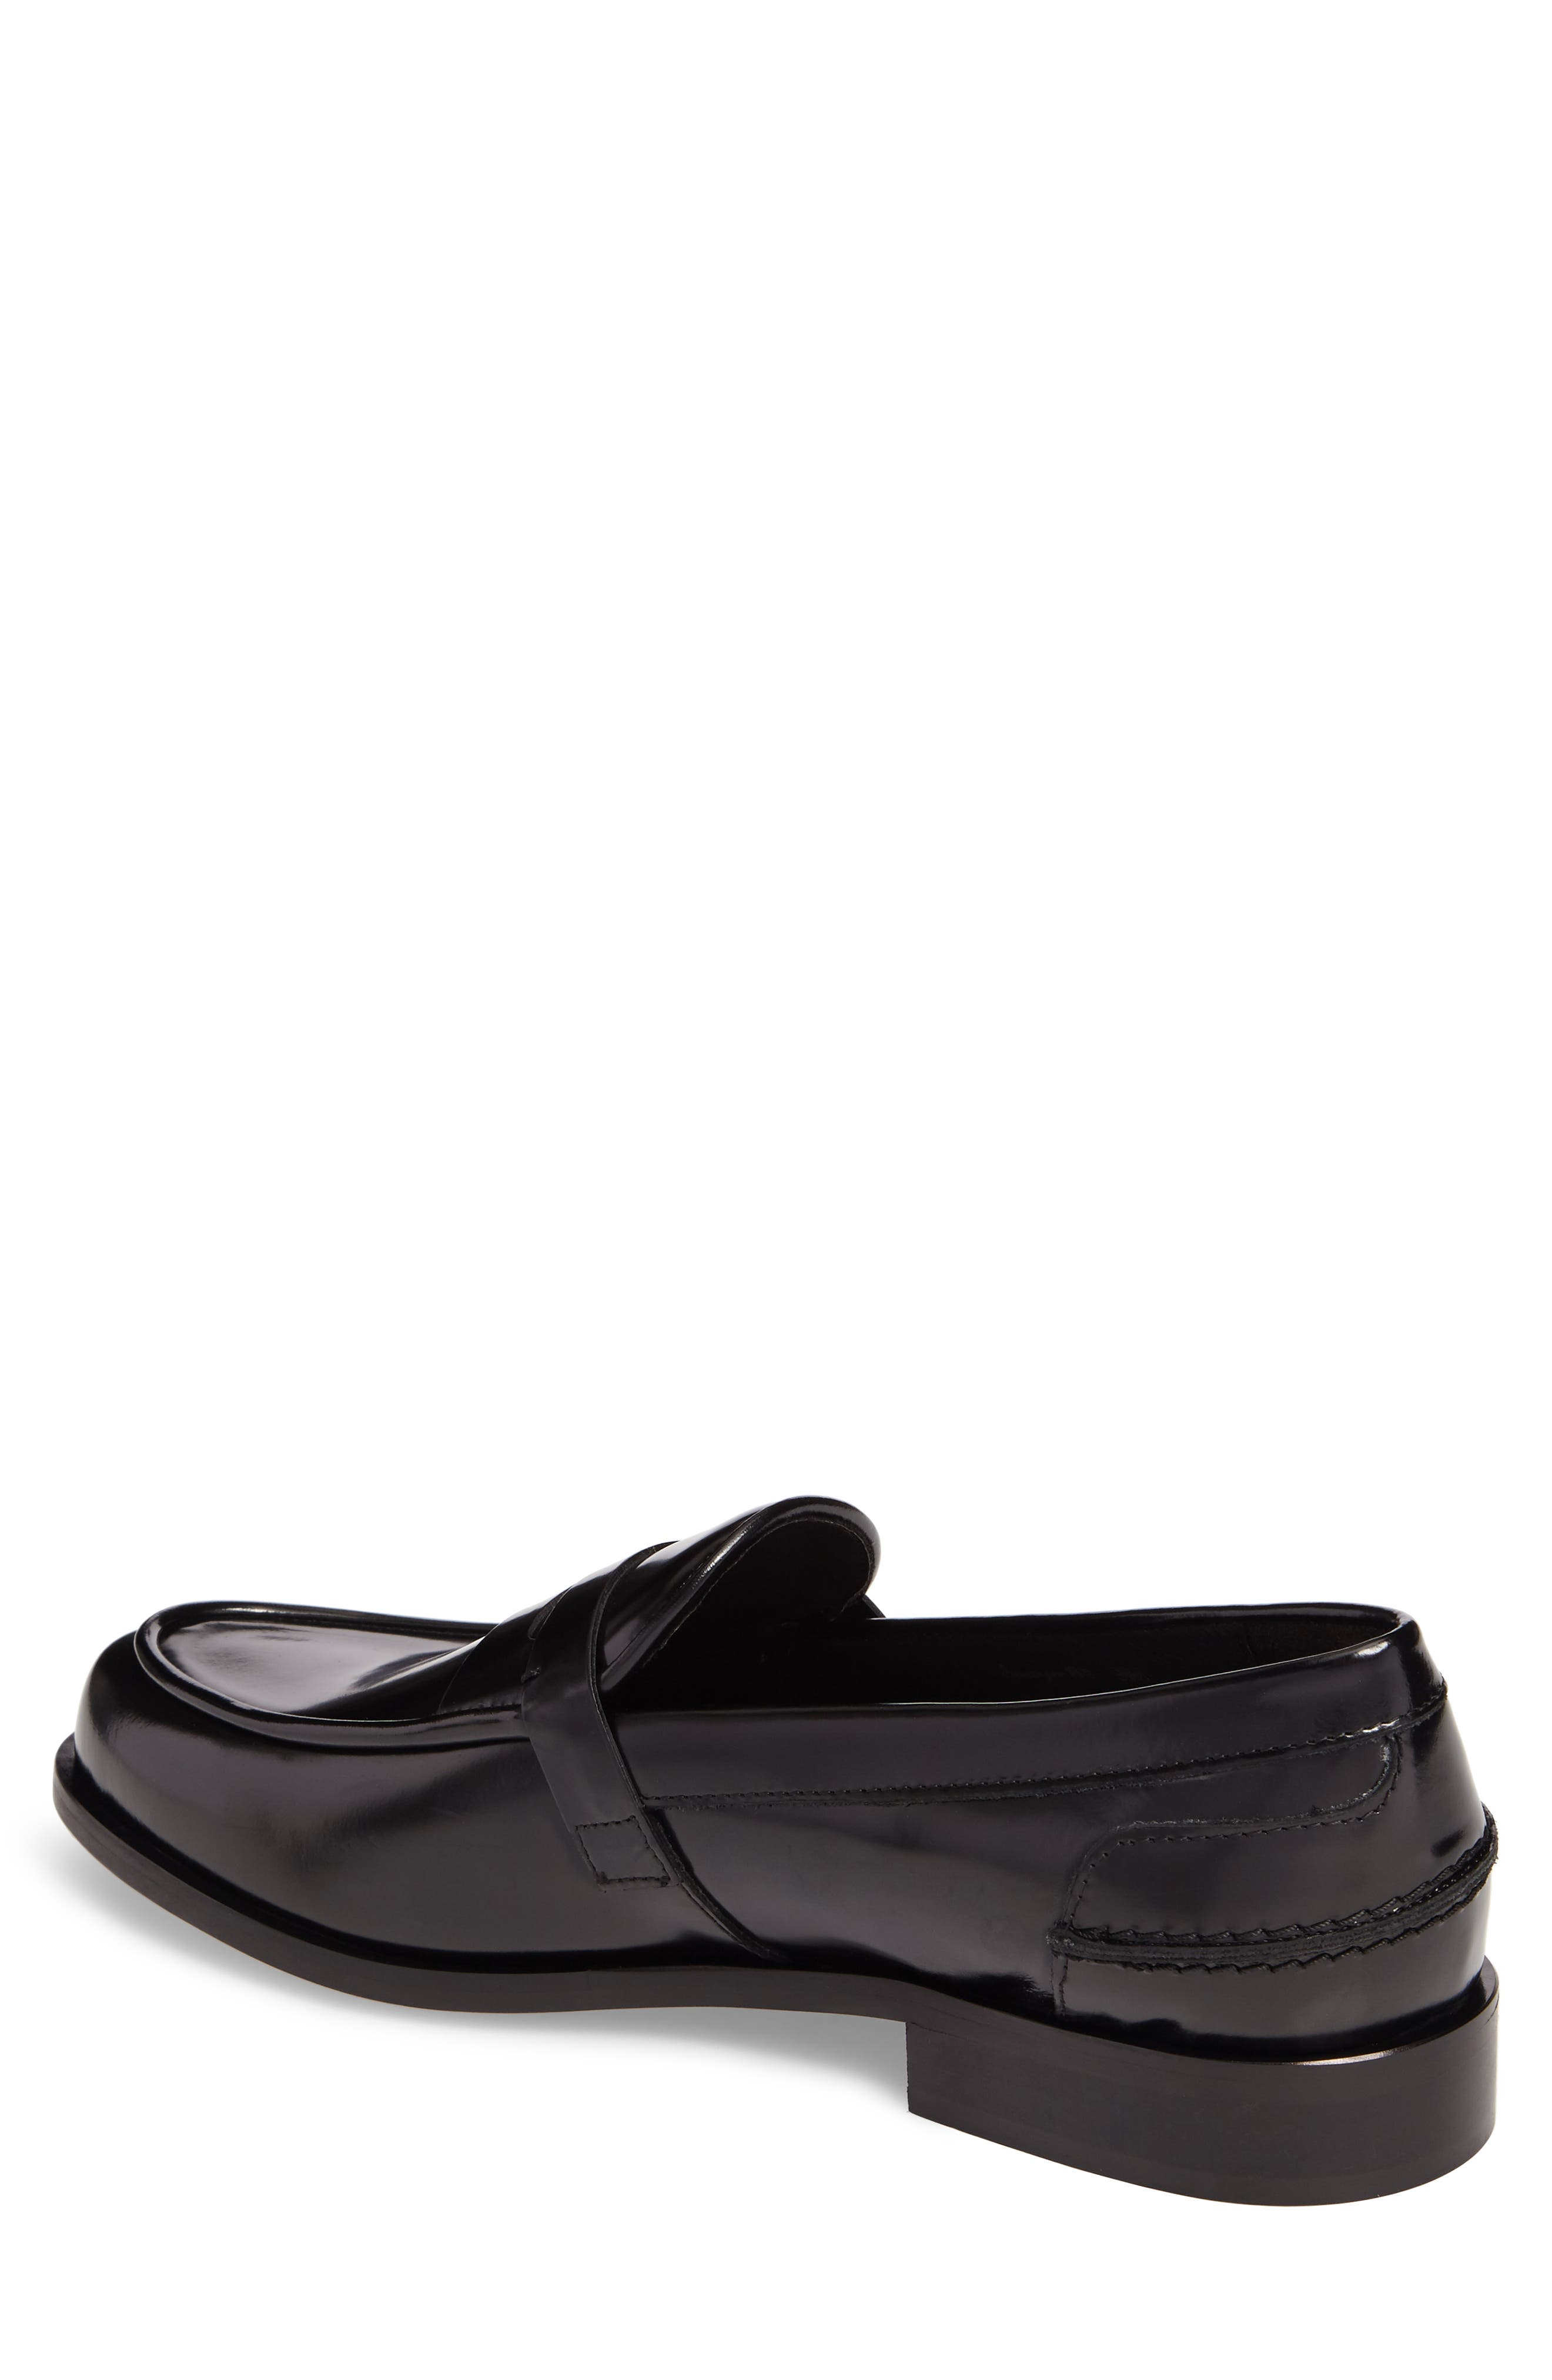 Donald J Pliner Sawyer Penny Loafer,                             Alternate thumbnail 3, color,